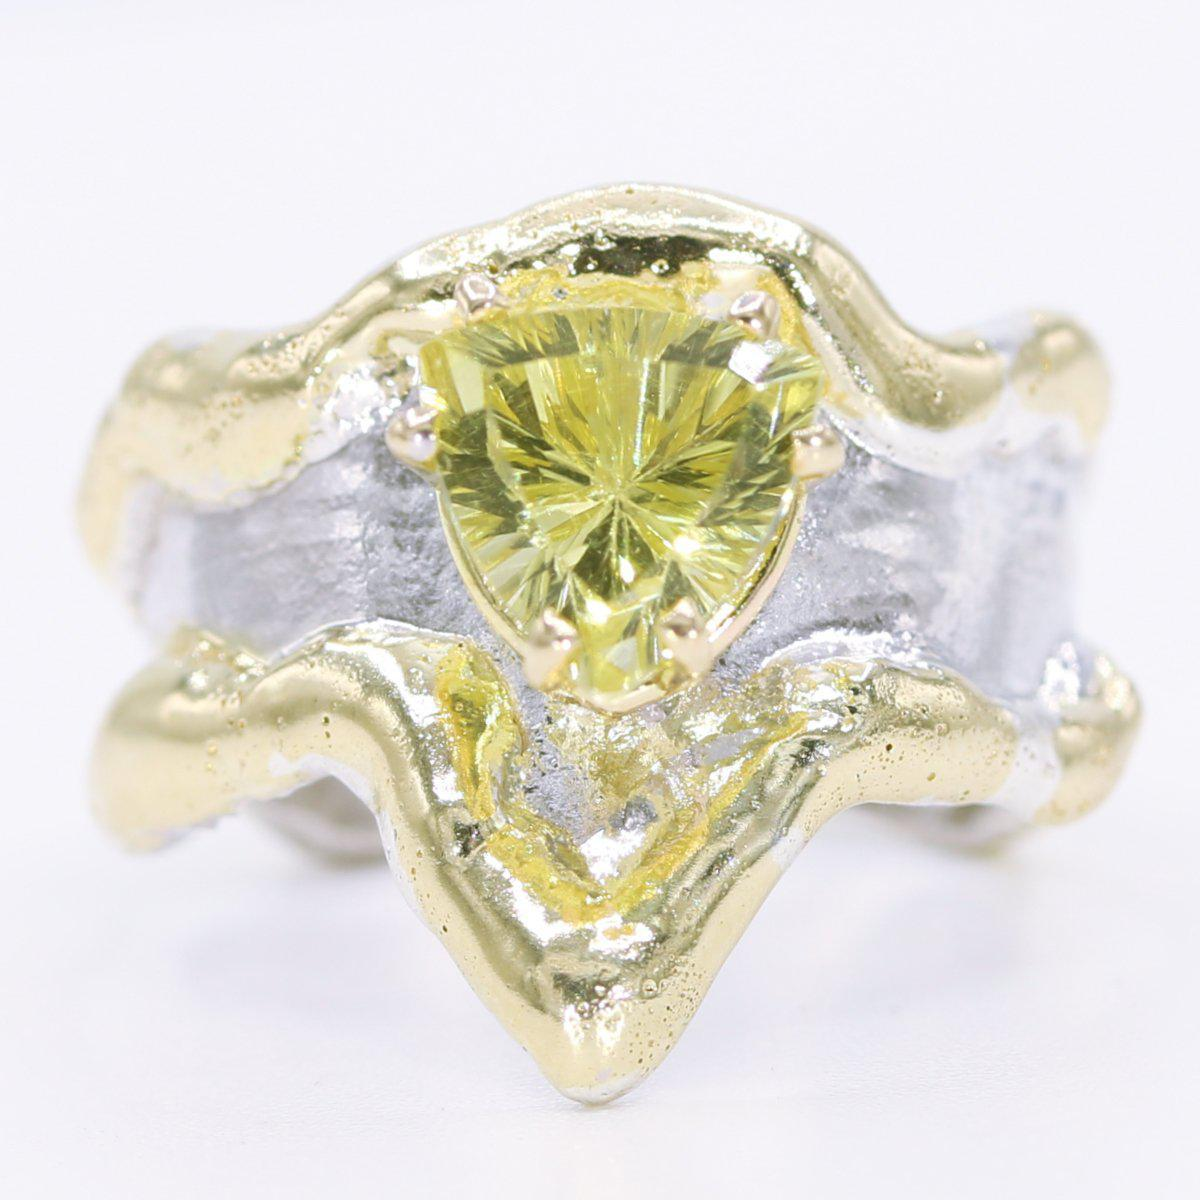 14K Gold & Crystalline Silver Margarita Quartz Ring - 34902-Fusion Designs-Renee Taylor Gallery